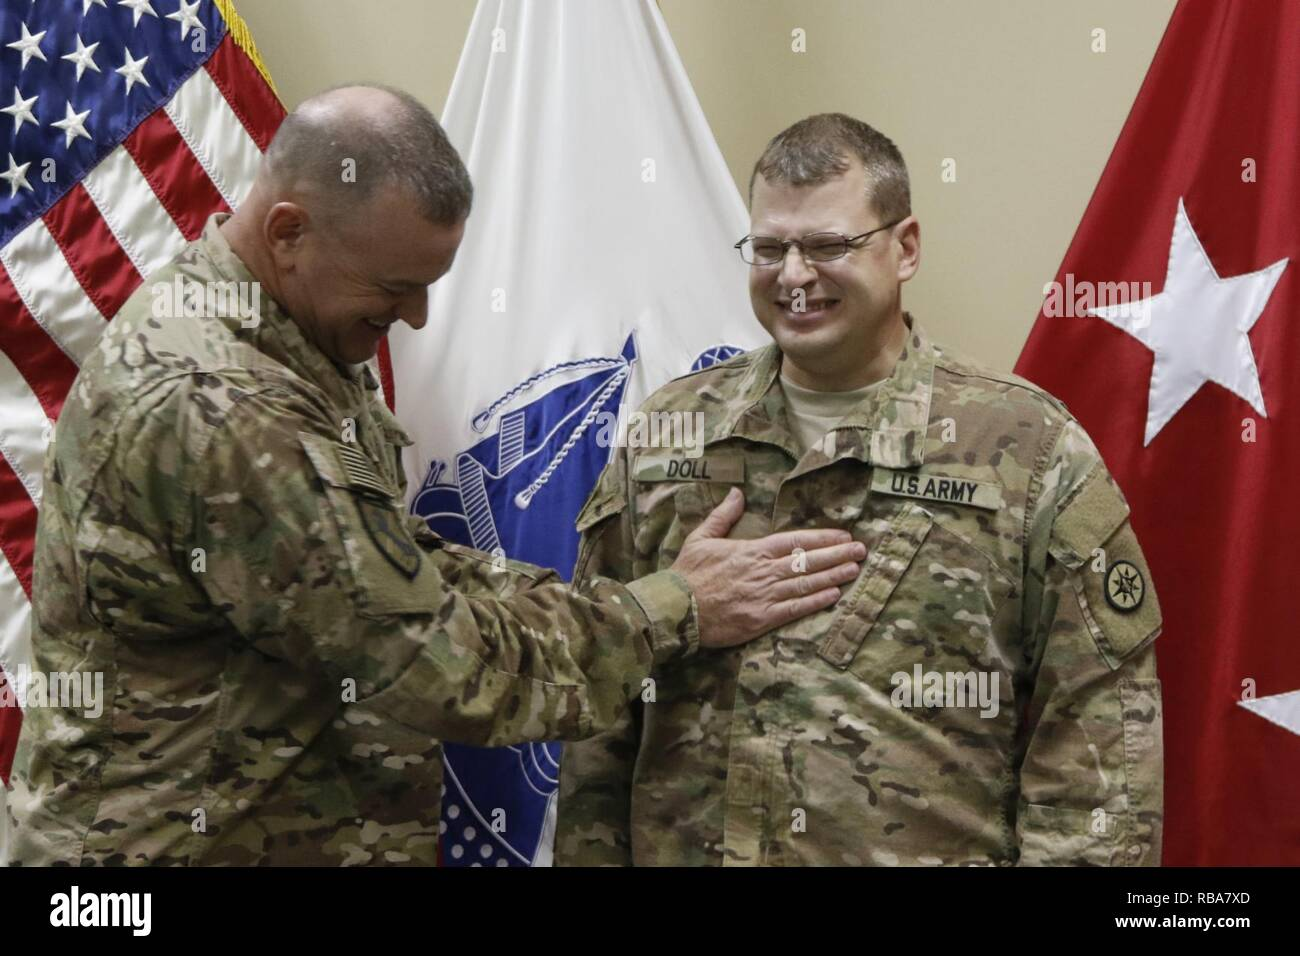 Brig. Gen. Robert D. Harter, 316th Sustainment Command (Expeditionary) commanding general, places the rank of Major on Phillip Doll during a promotion ceremony at Camp Arifjan, Kuwait, Dec. 31, 2016. - Stock Image